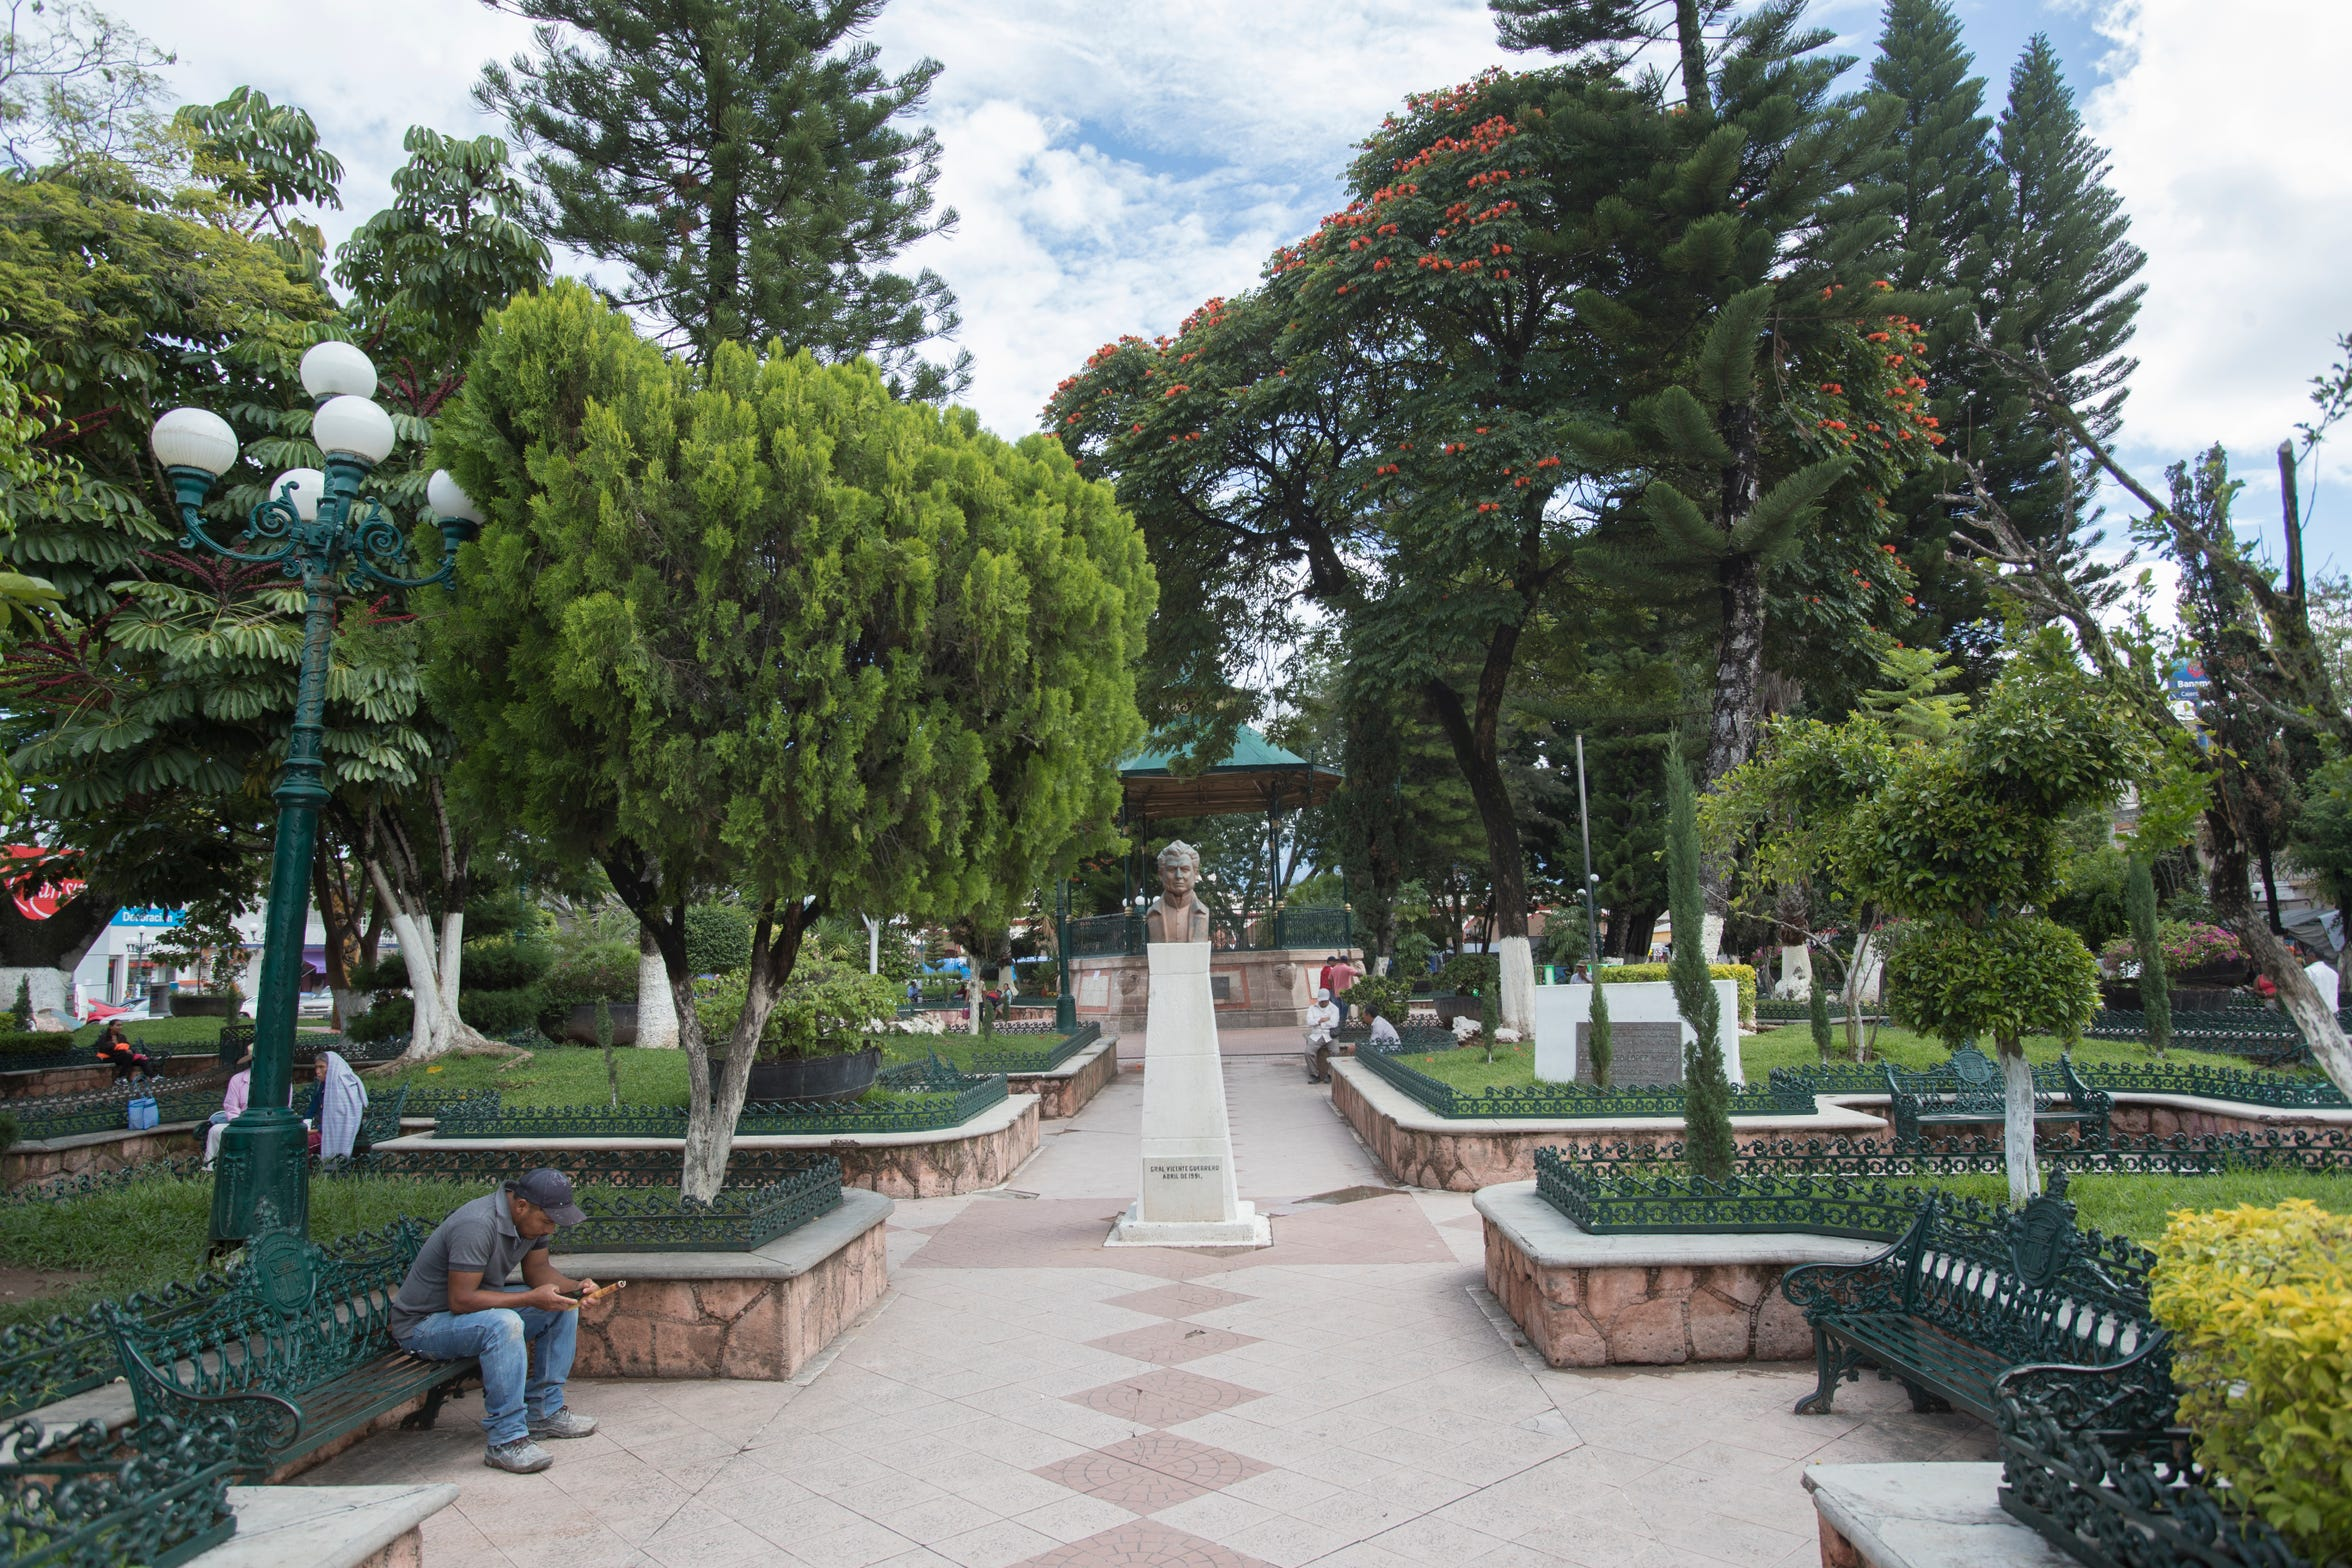 Chilapa, once a popular tourist destination, has become too dangerous for visitors, and now clears out before sundown.